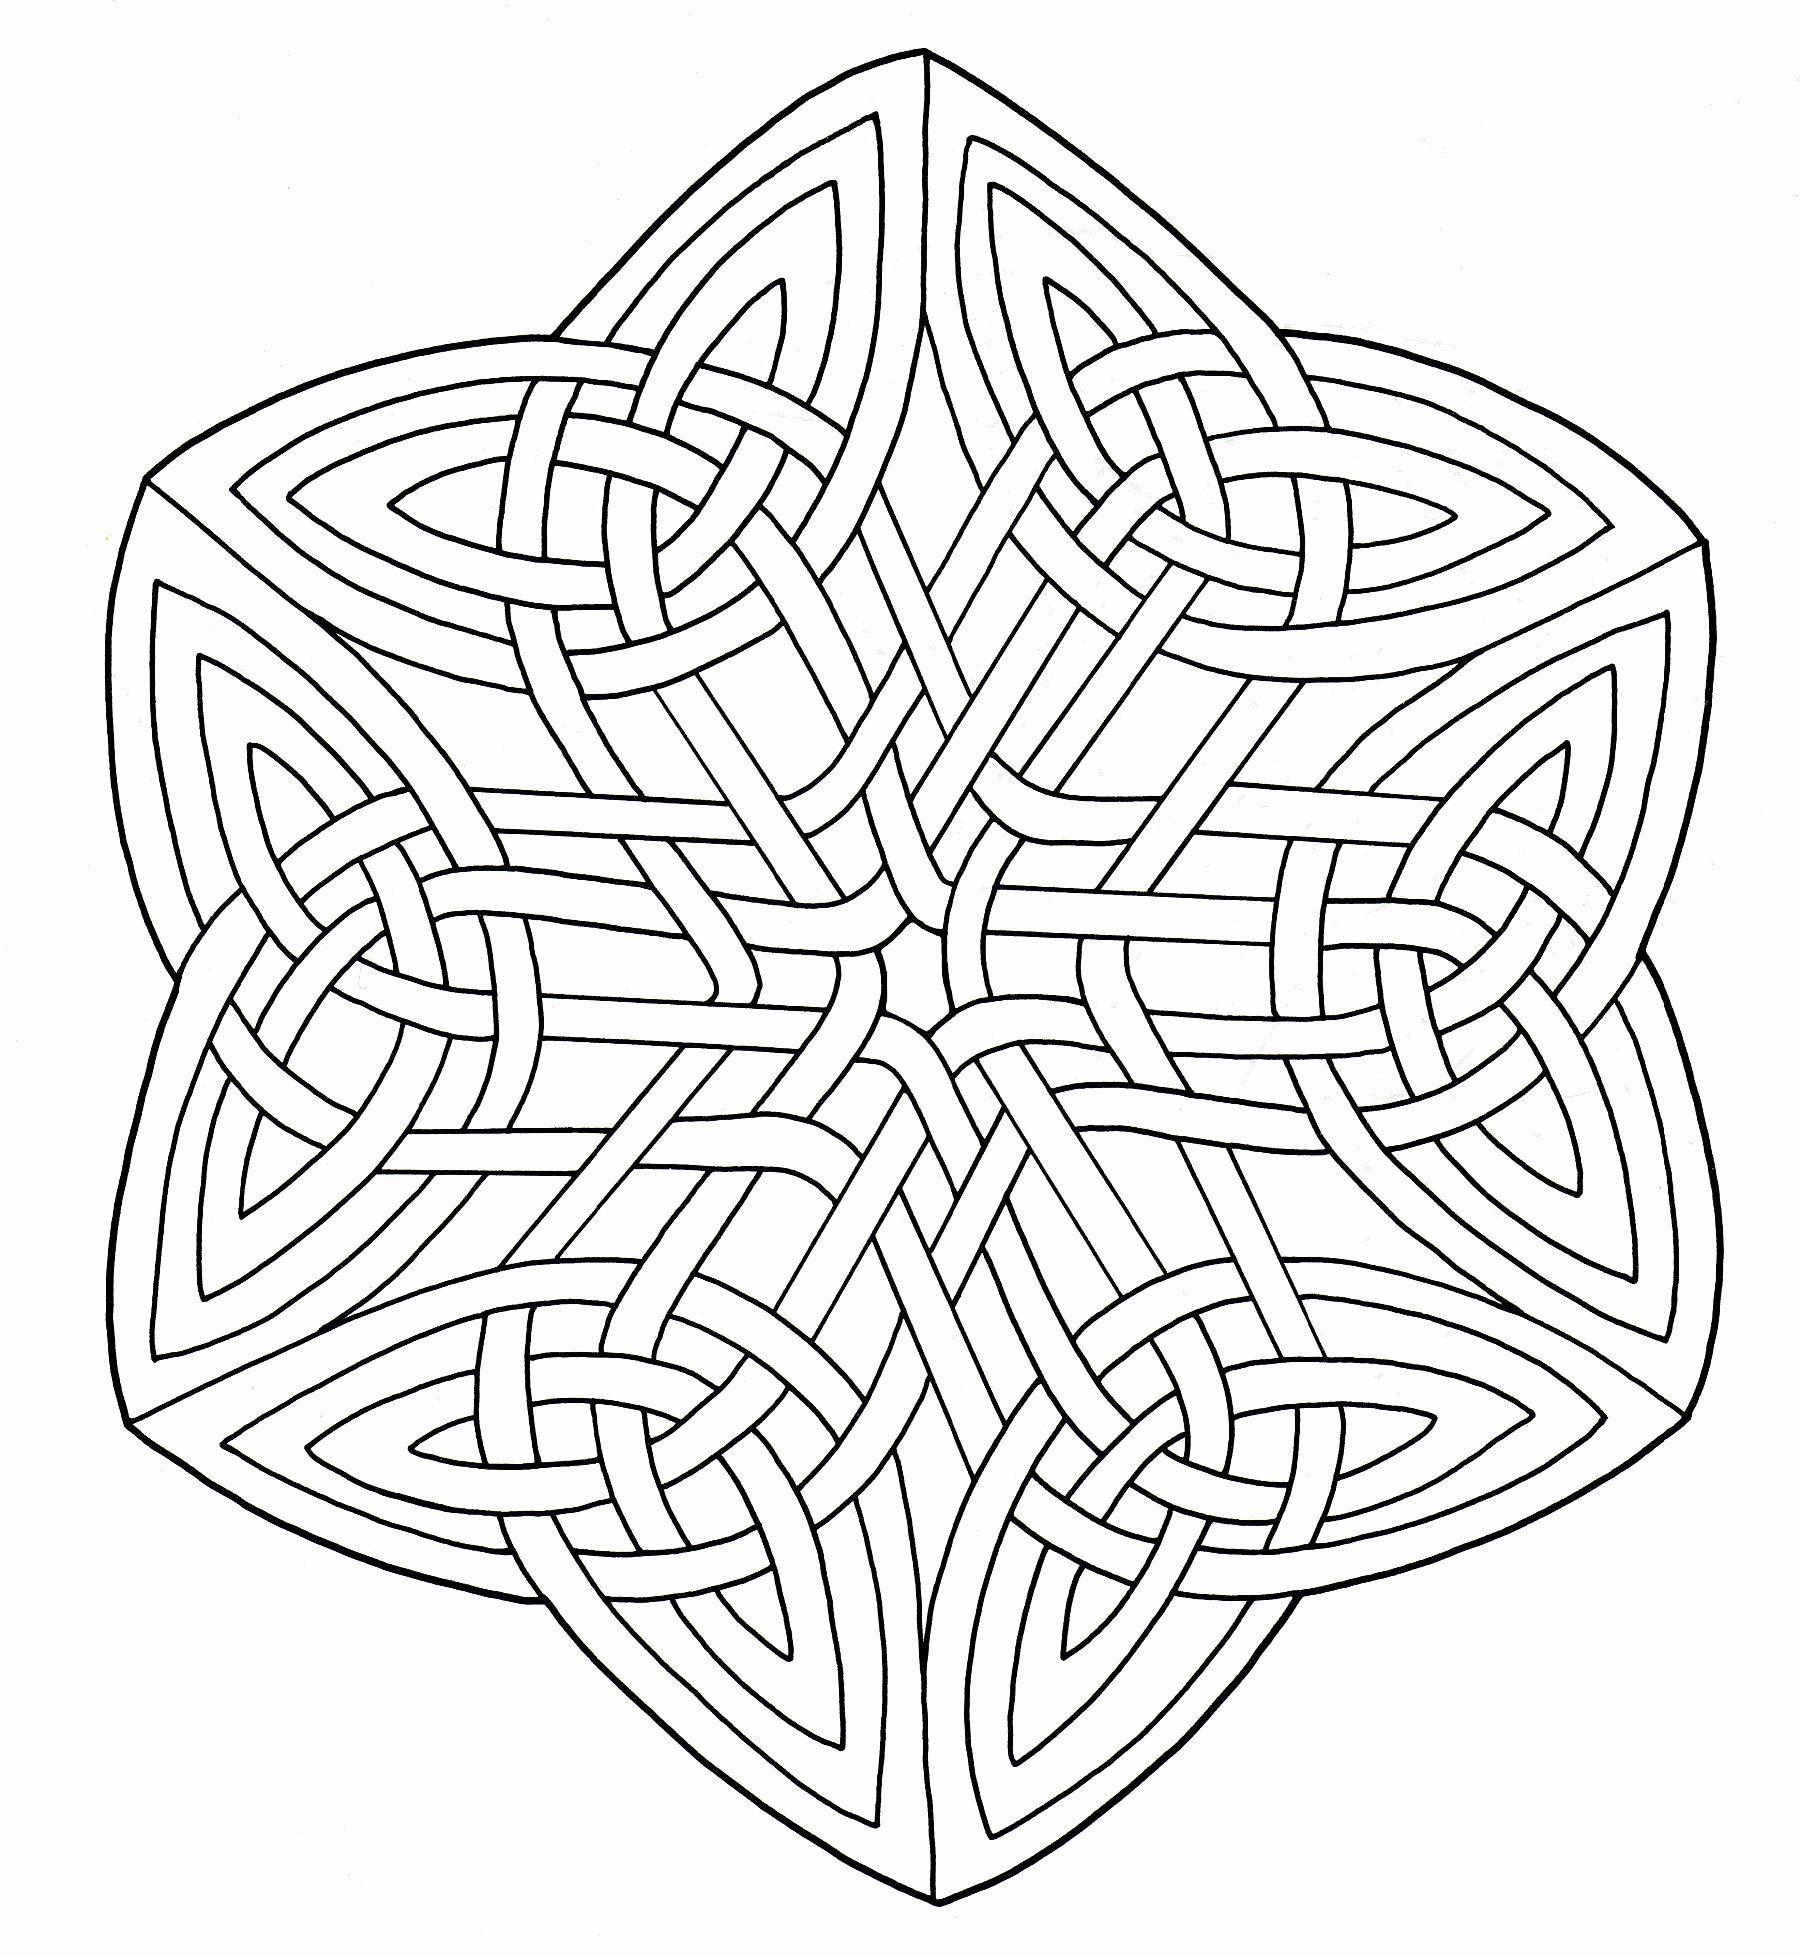 Free Online Mandala Coloring Pages Lovely Coloring Pages Staggering Free Celtic Mandala Coloring